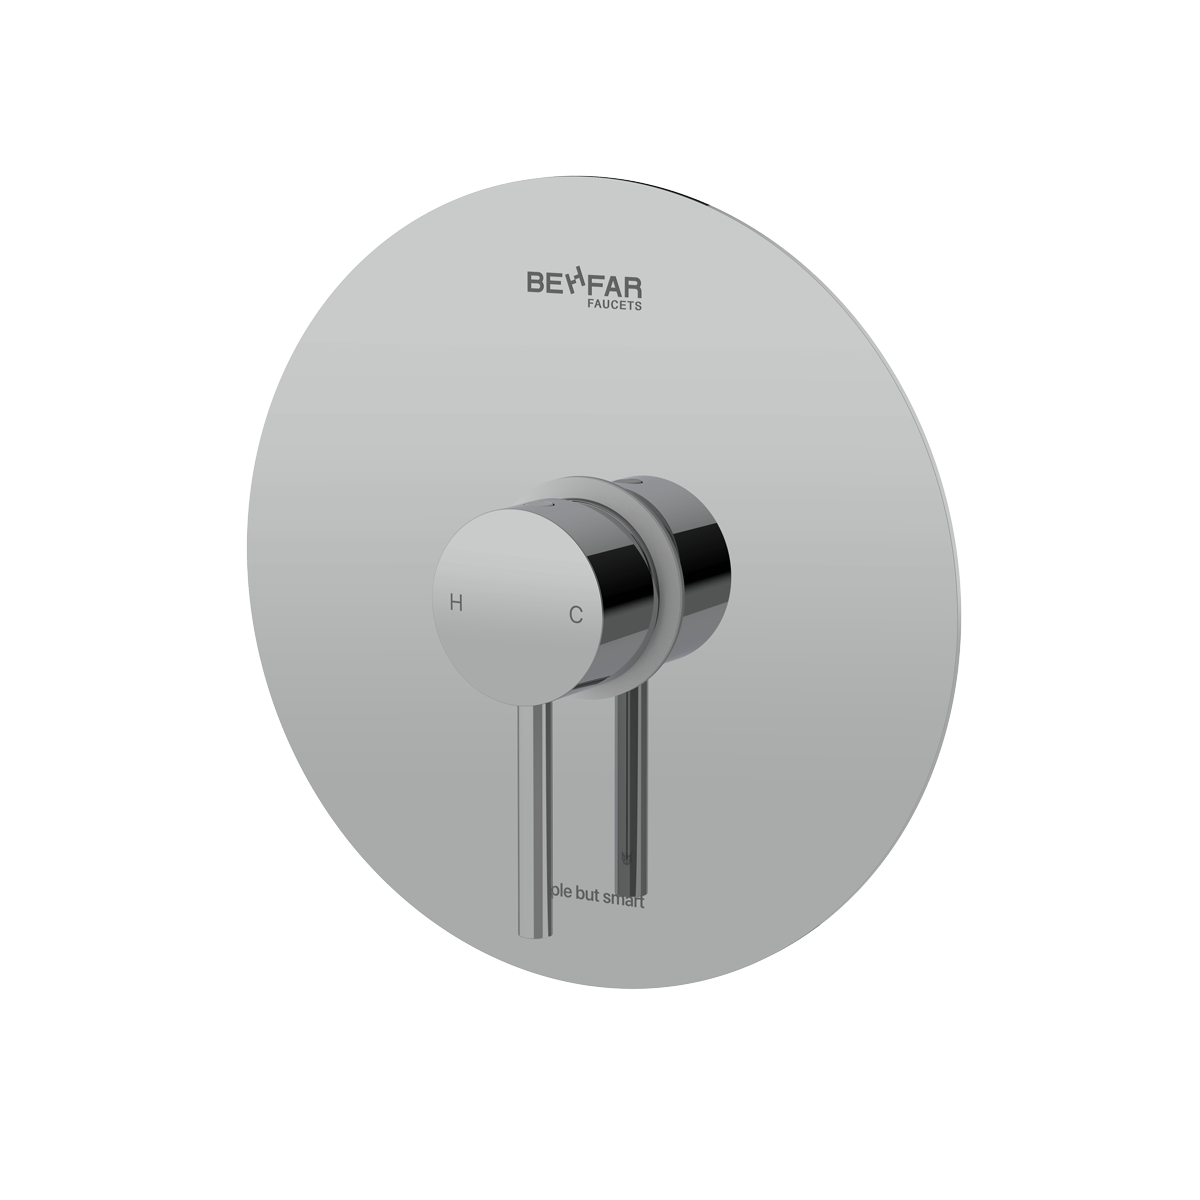 behfar shiny chrome toilet concealed with ibox plate c